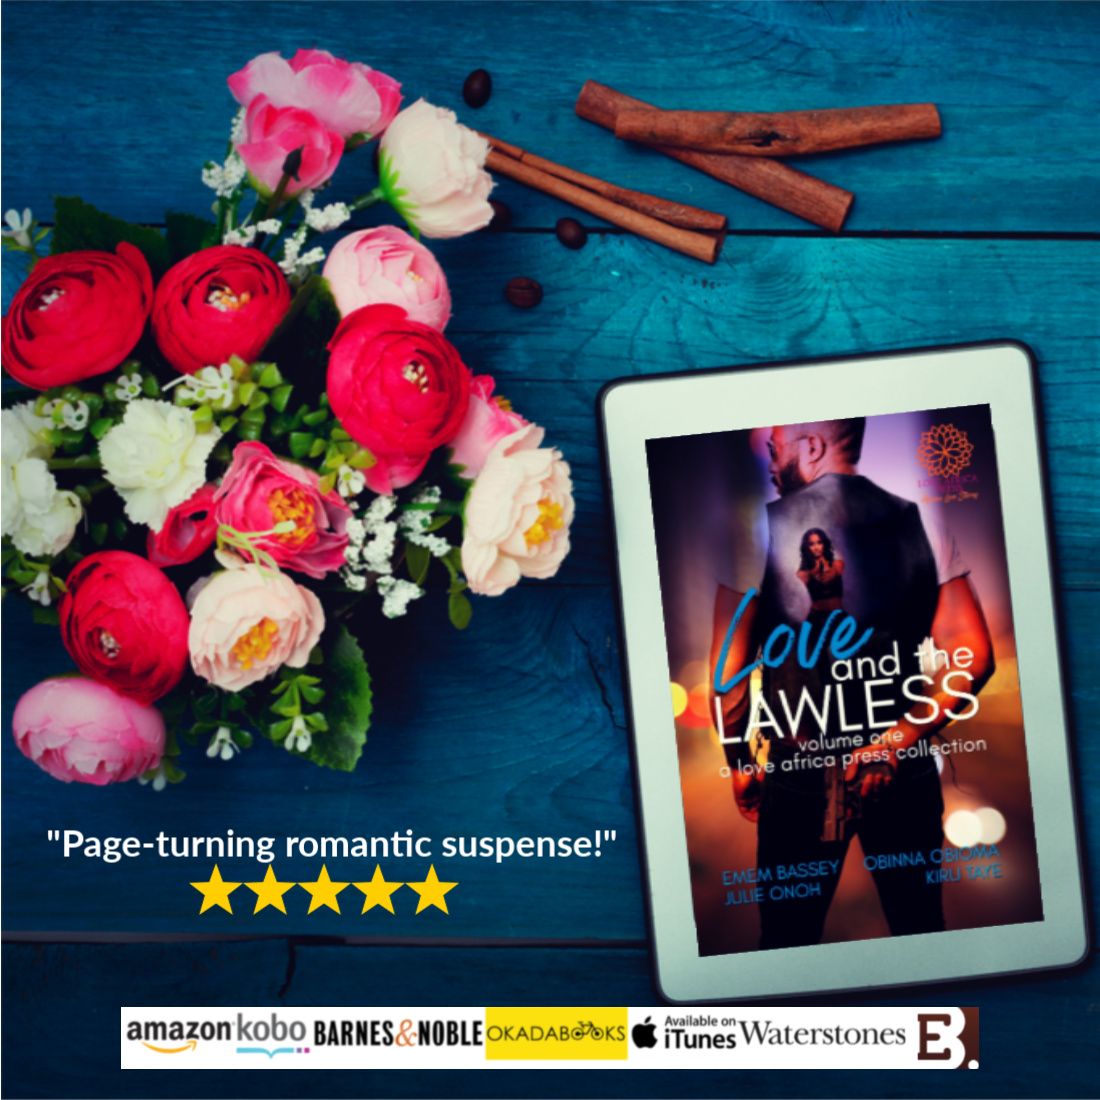 Love and the Lawless - flowers-5stars